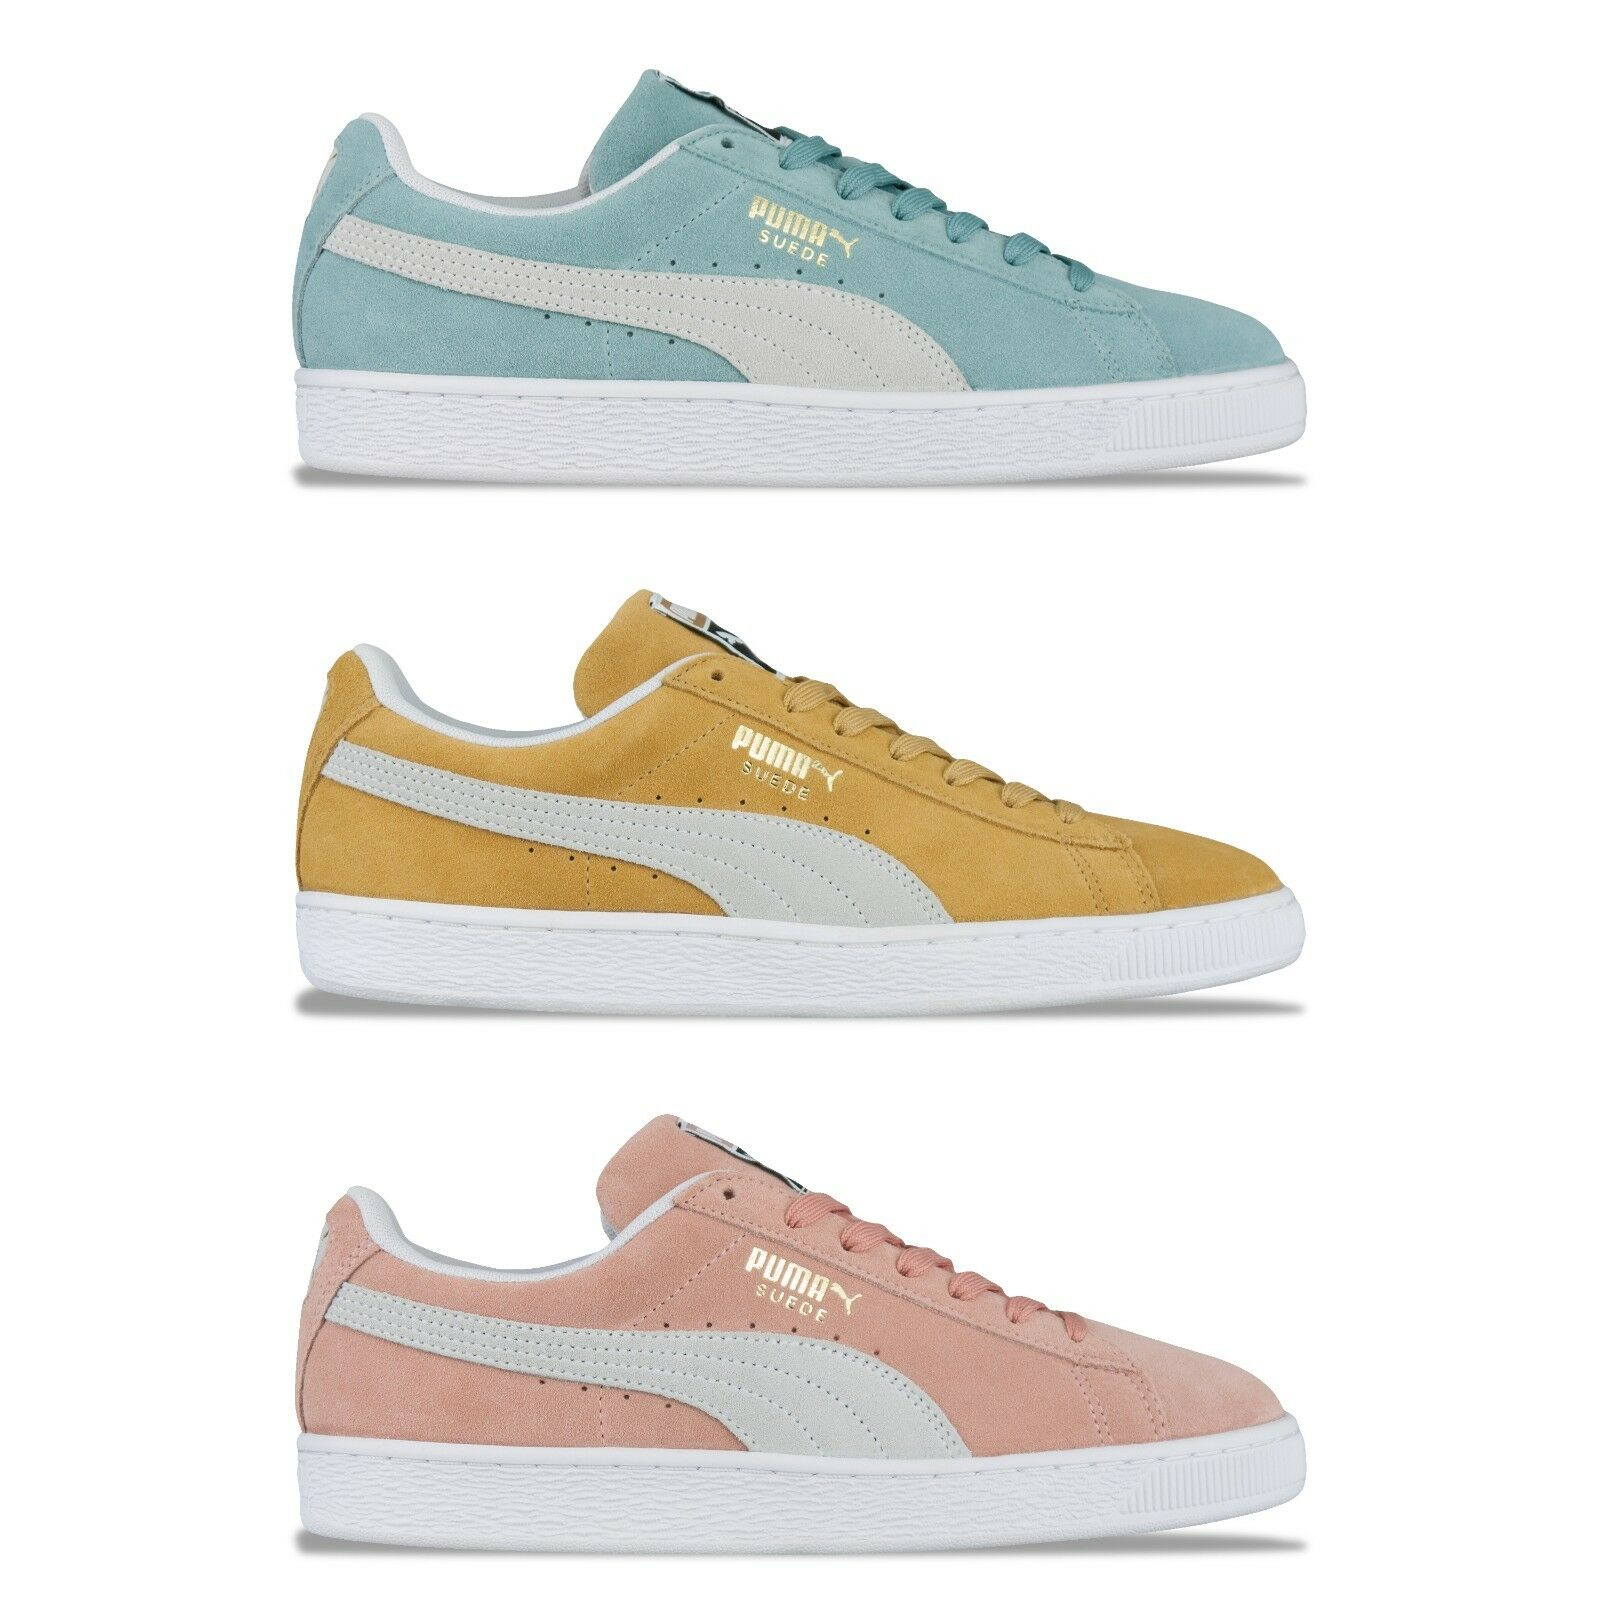 PUMA SUEDE CLASSIC TRAINERS - PUMA SUEDE 365347 - PASTEL PINK, blueE, YELLOW